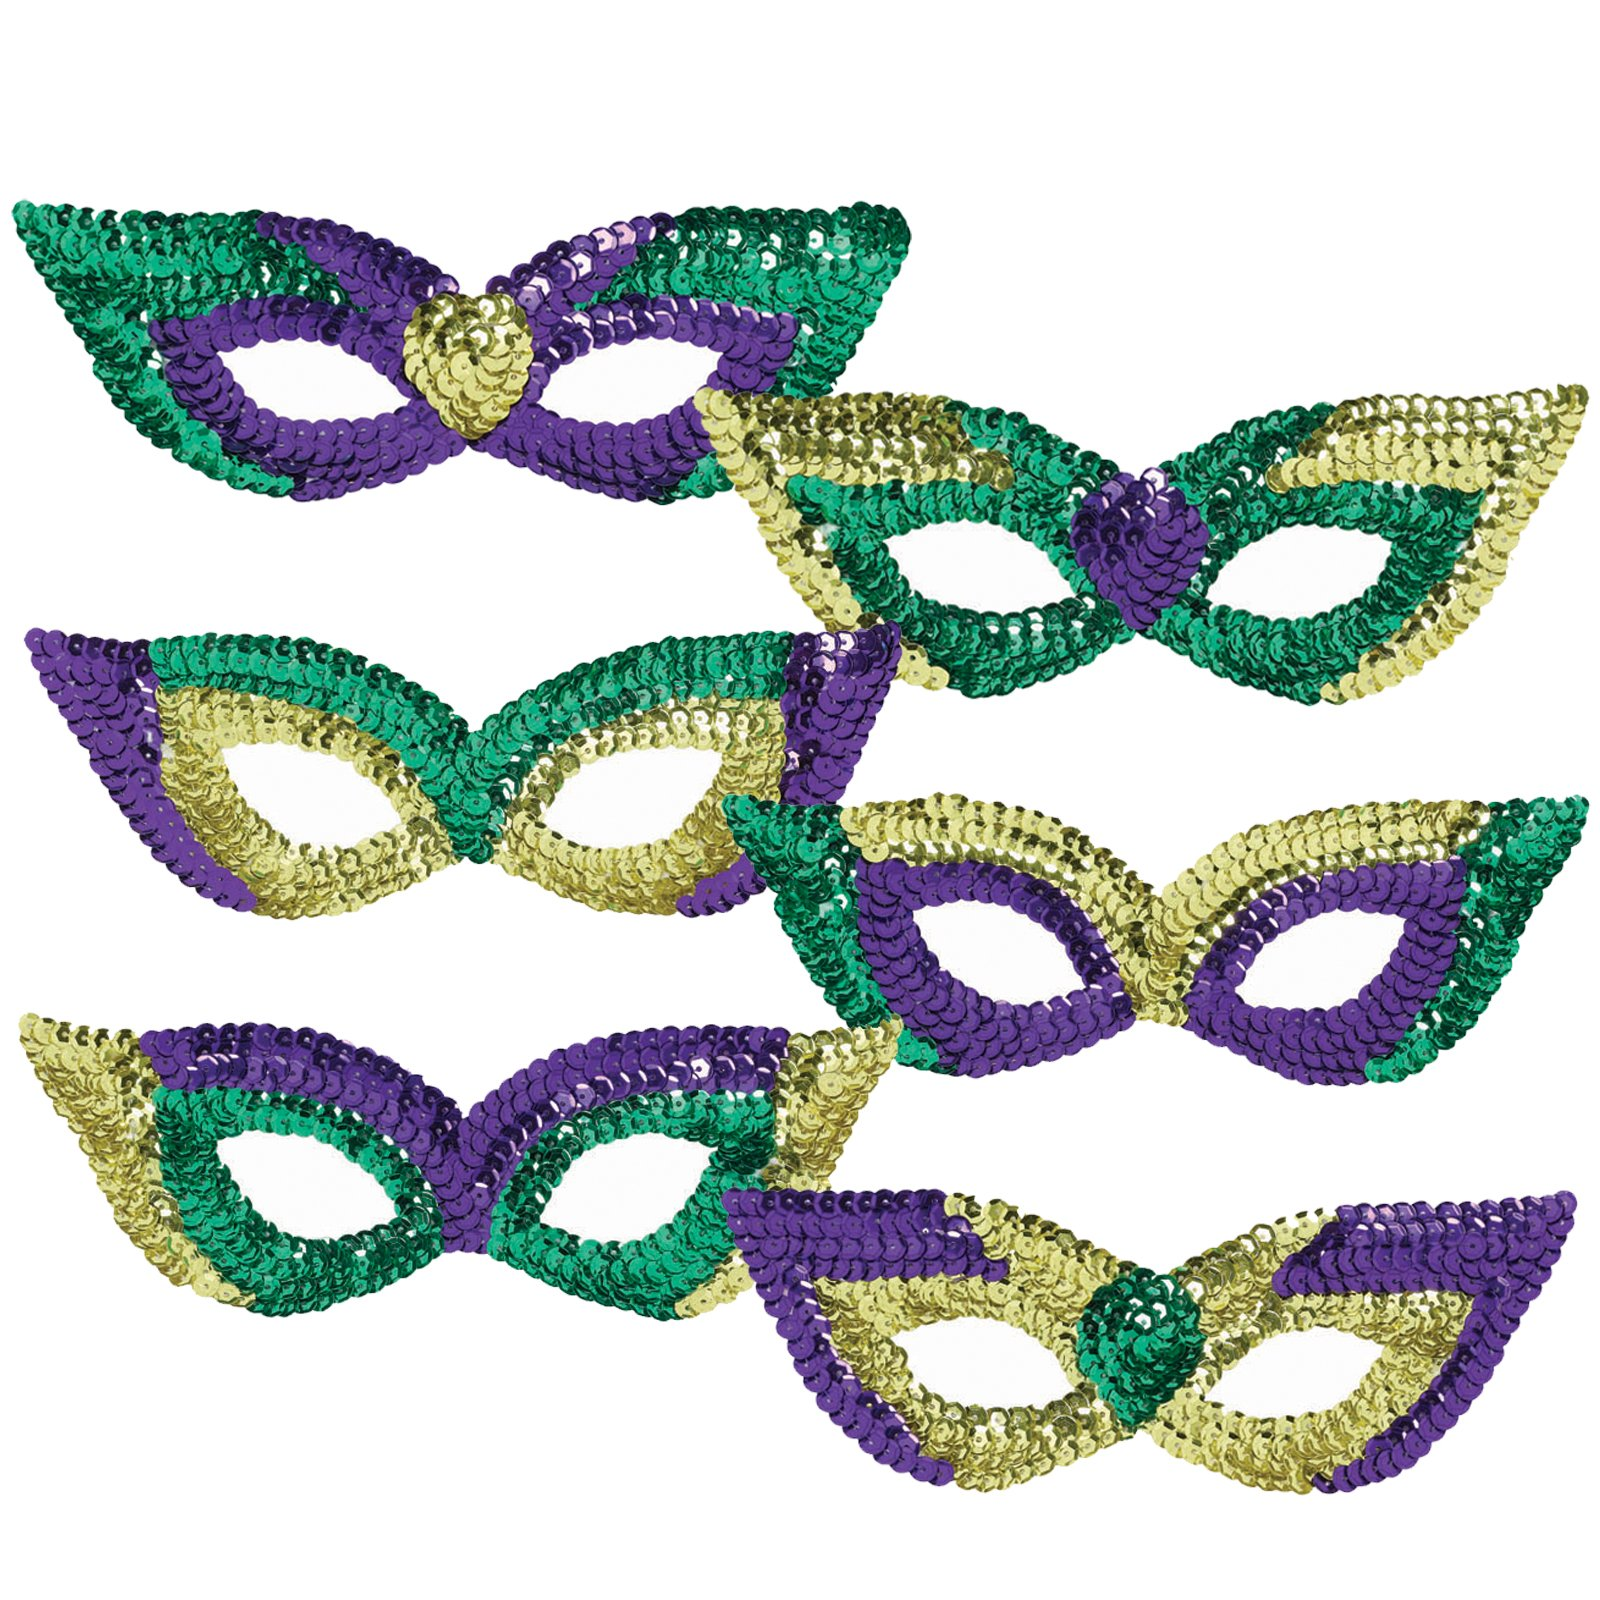 Mardi Gras Sequin Party Masks (6 count)